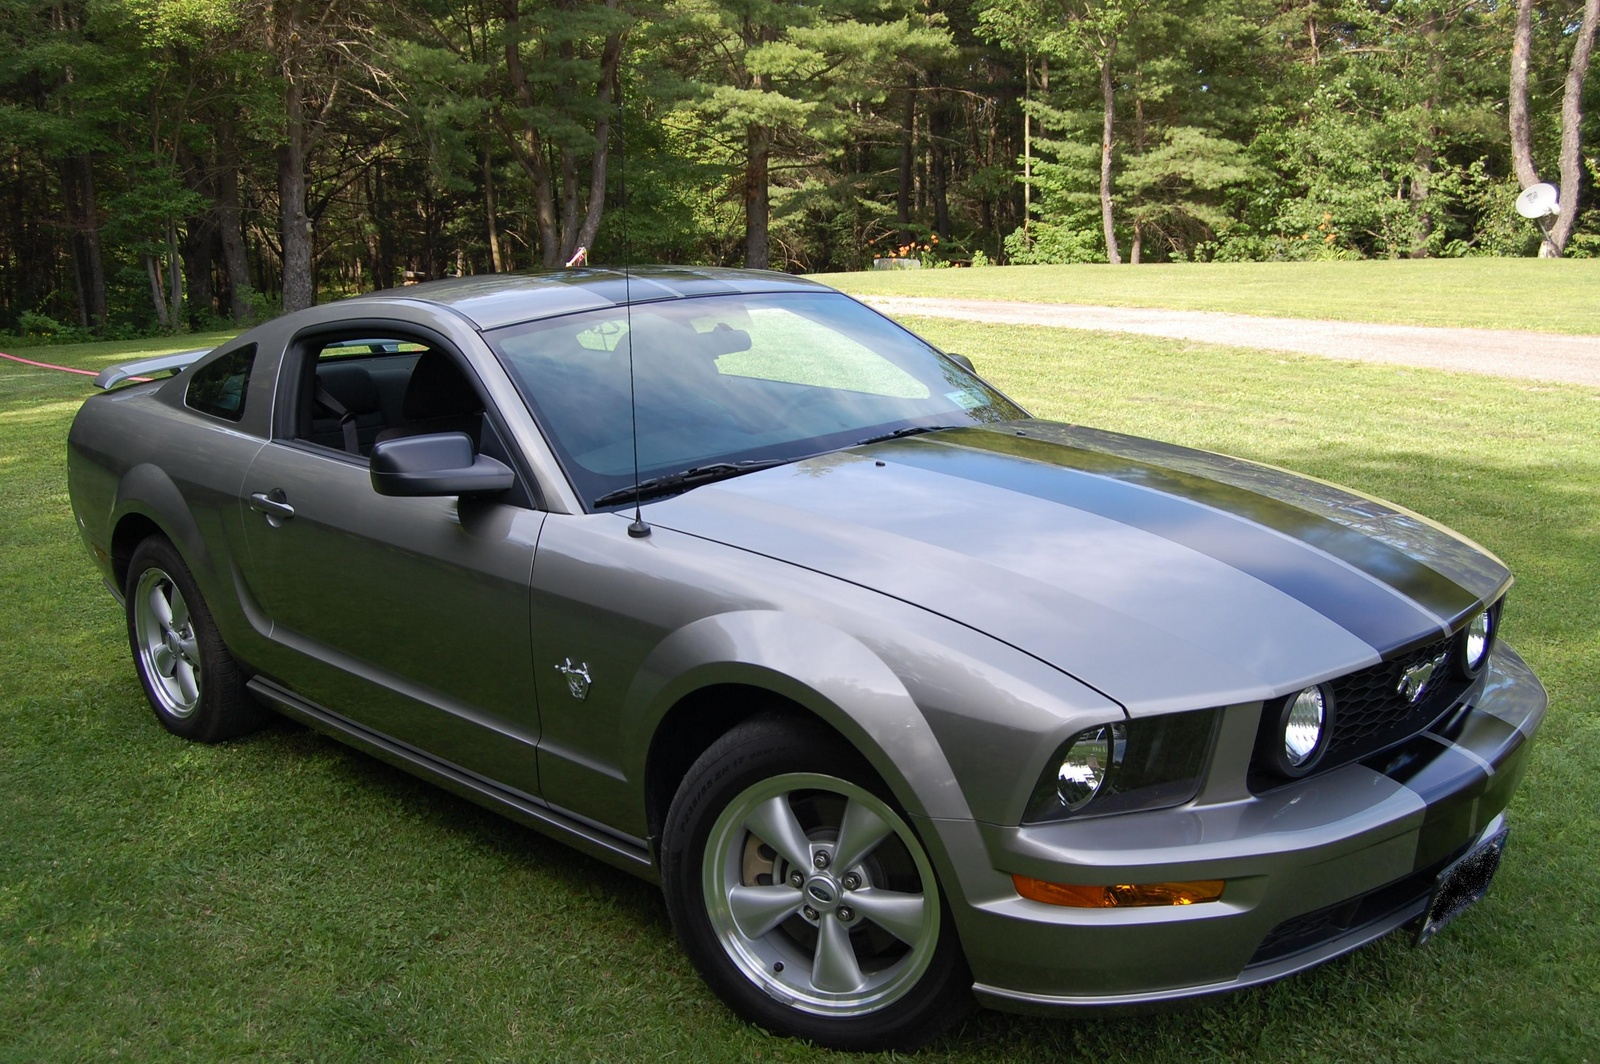 2009 ford mustang gt horsepower car autos gallery. Black Bedroom Furniture Sets. Home Design Ideas